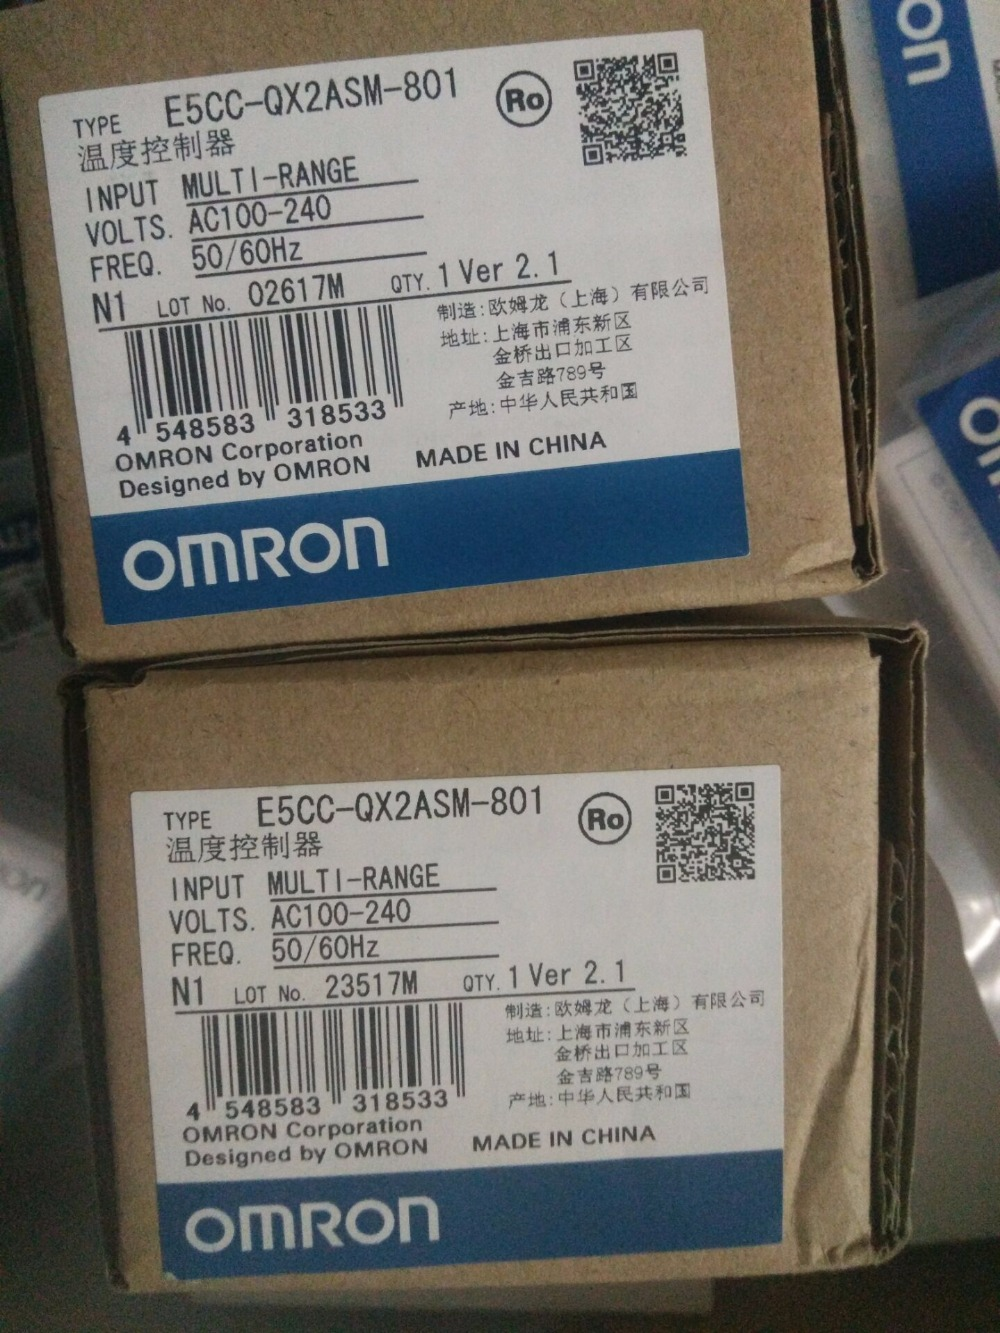 1pc E5CC-RX2ASM-801 OMR Temperature Controller, E5CCRX2ASM801 Sensor NEW in Box, E5CC RX2ASM 801 dtb4848cr delta temperature controller new in box